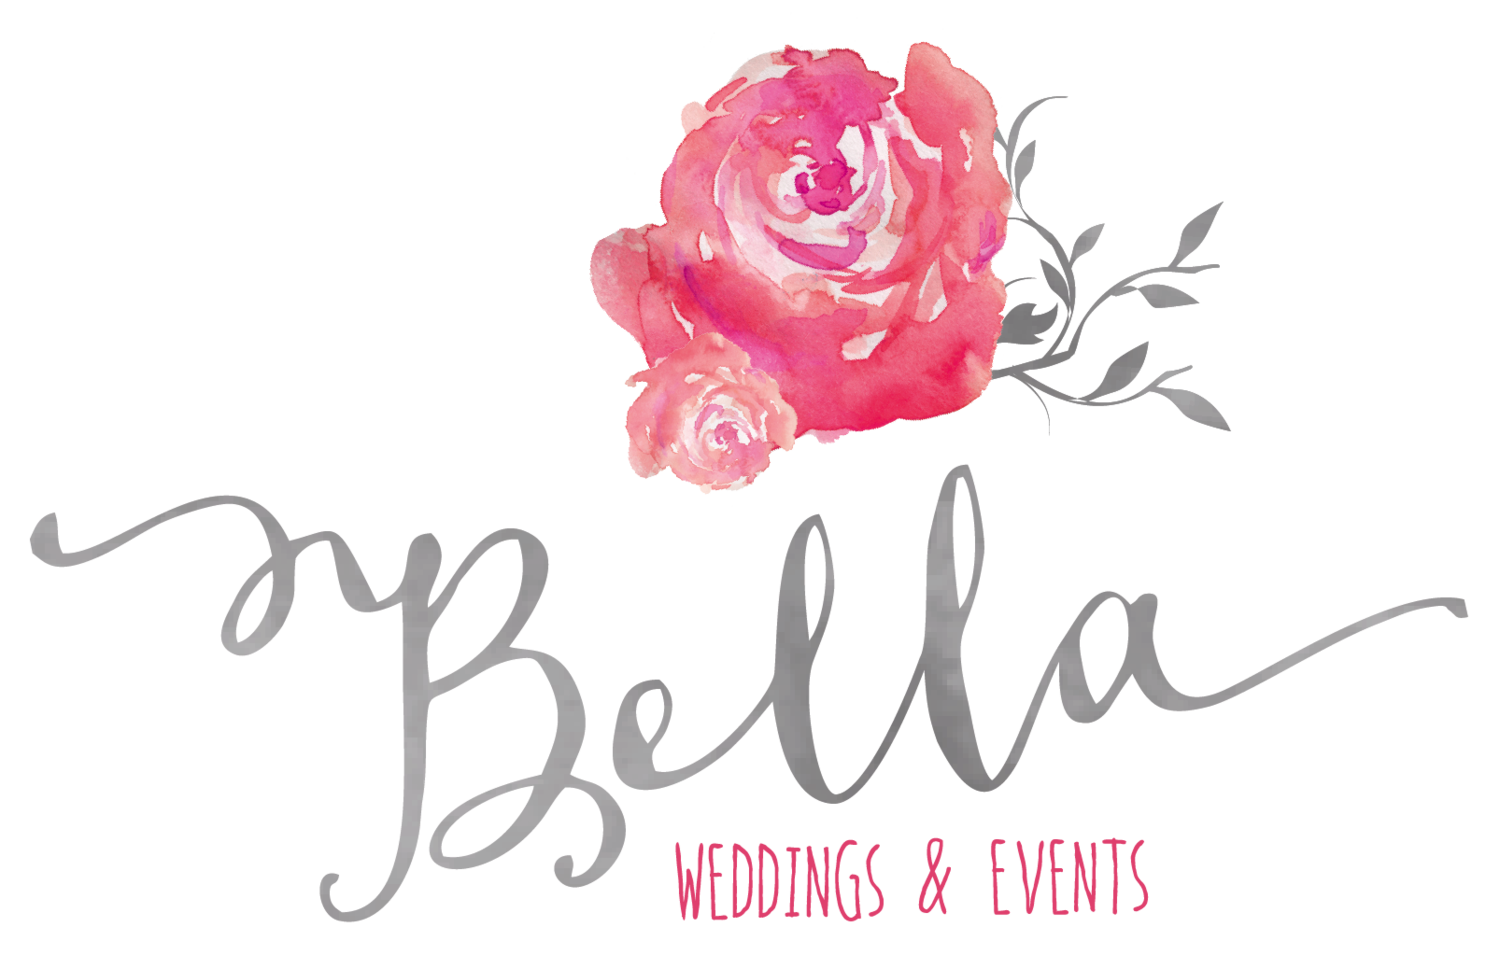 Bella Weddings & Events | Oahu Wedding Planning & Coordination Services by Gabriella Kawamoto